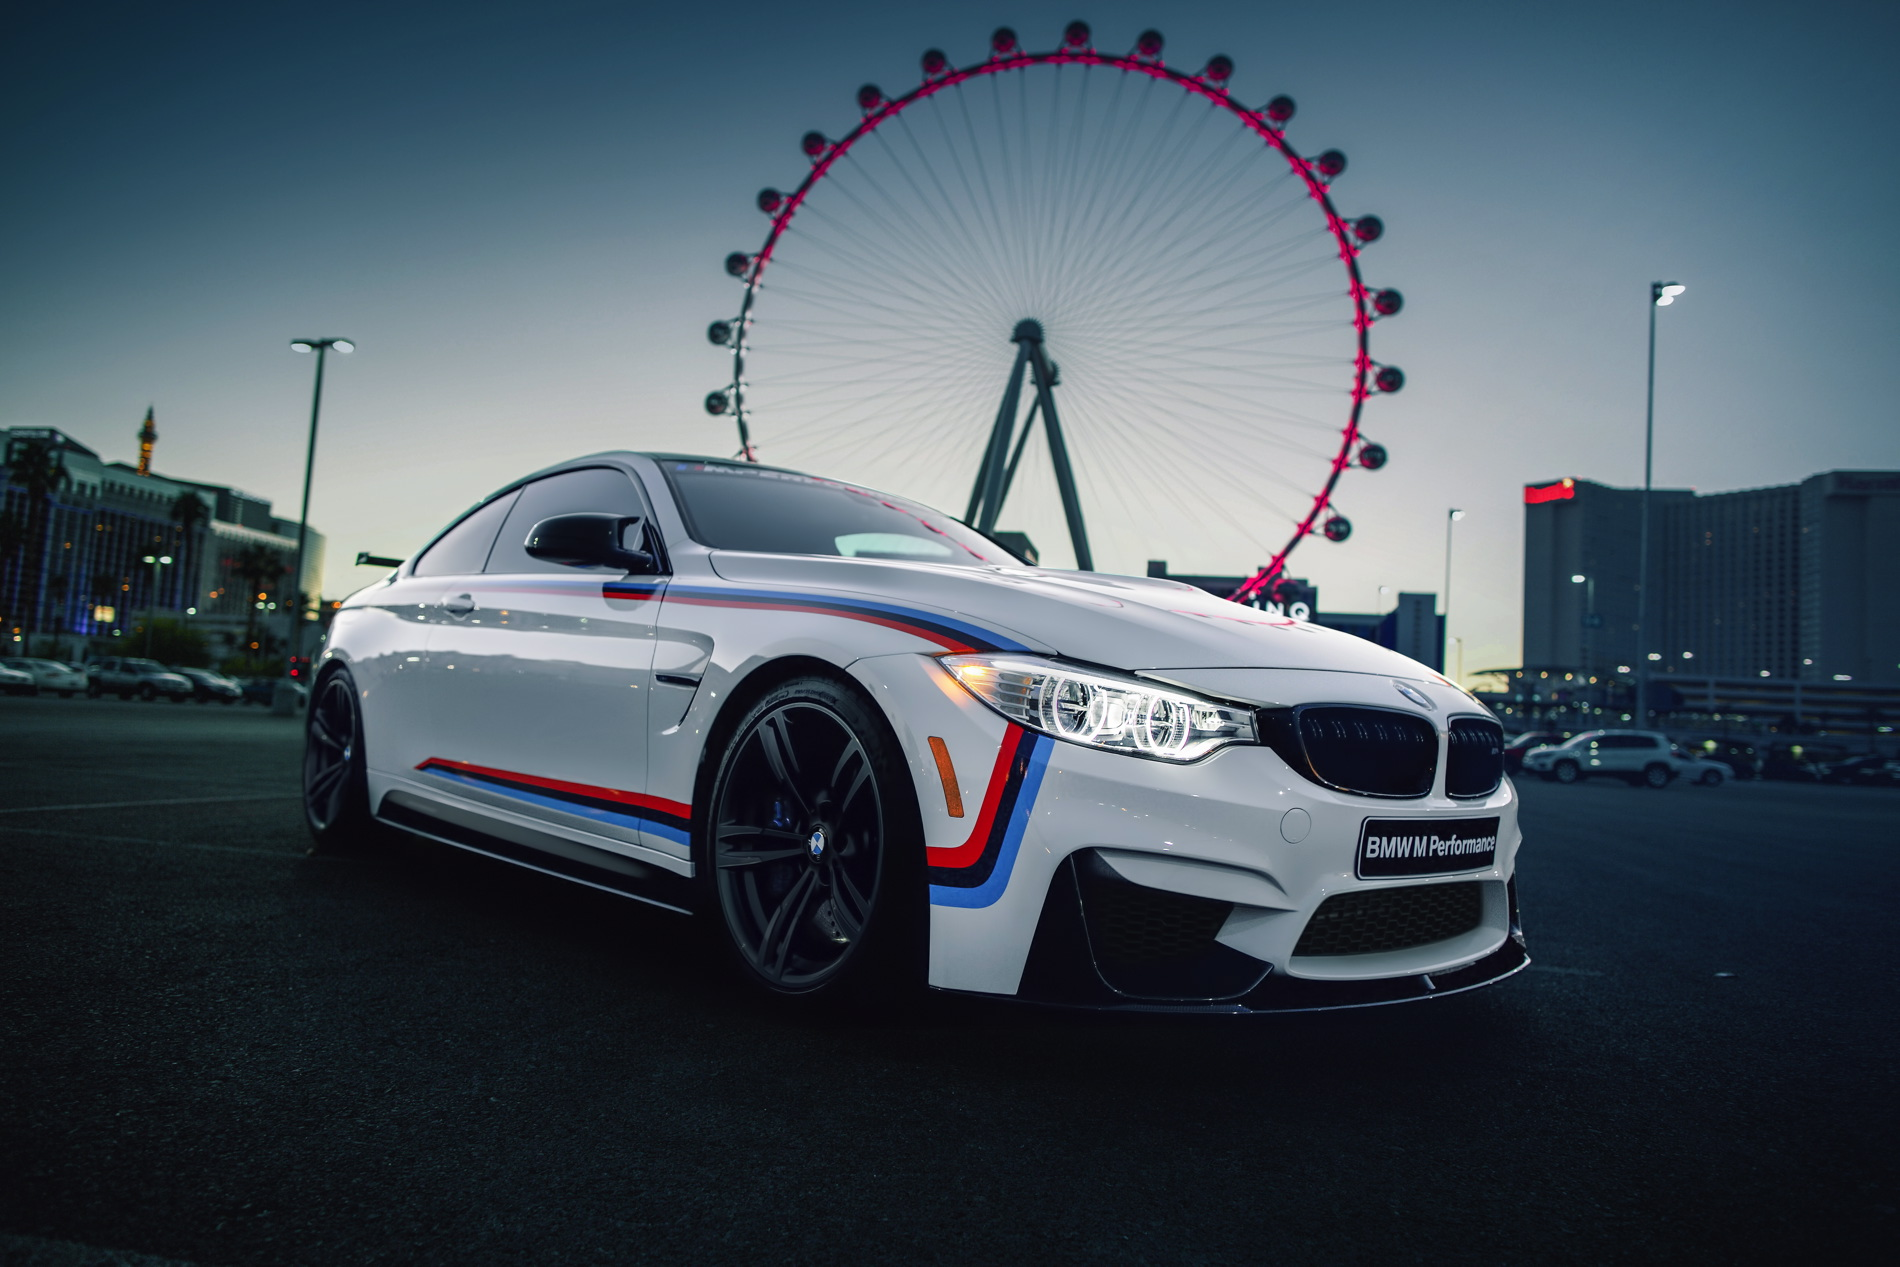 1900x1267 - BMW M4 Wallpapers 2